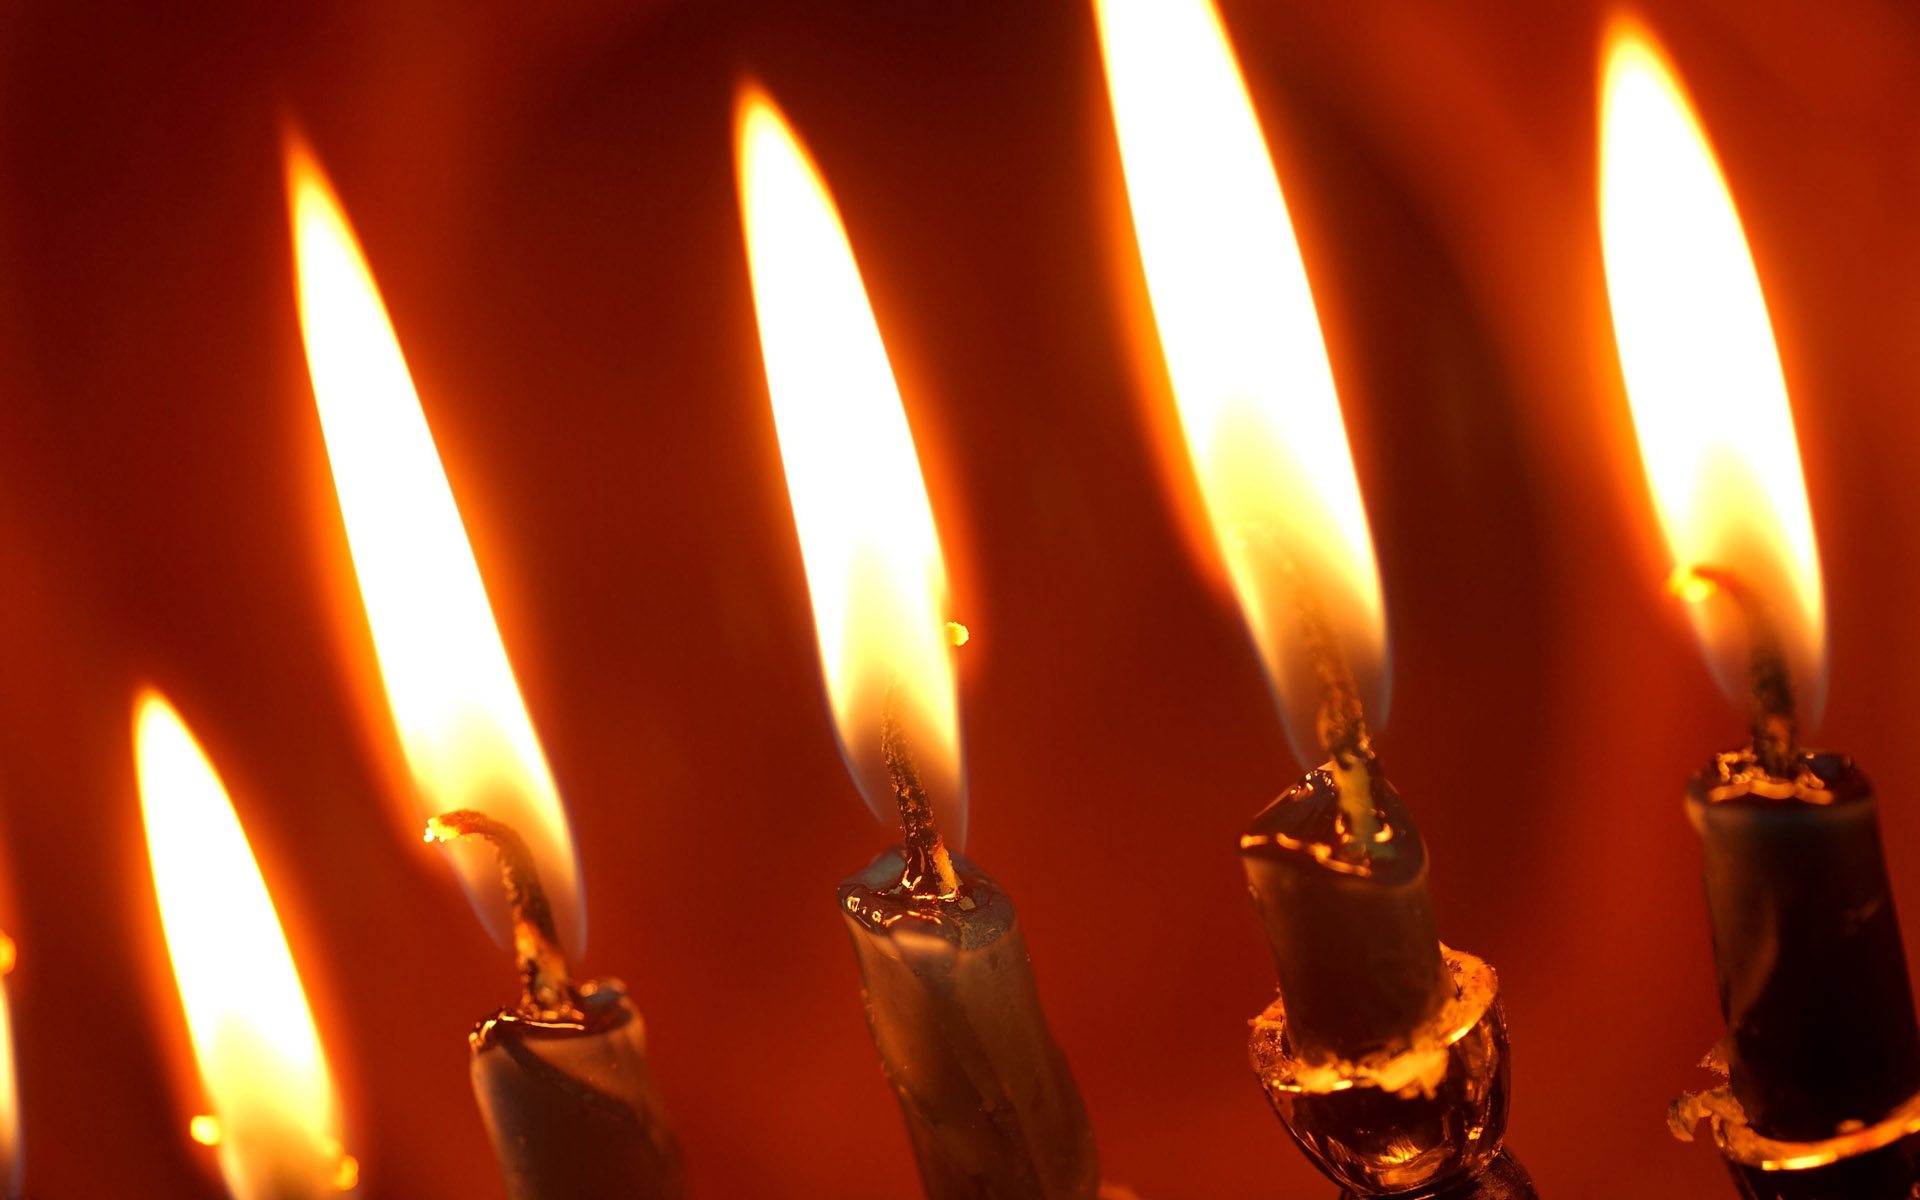 Candle wallpaper 555